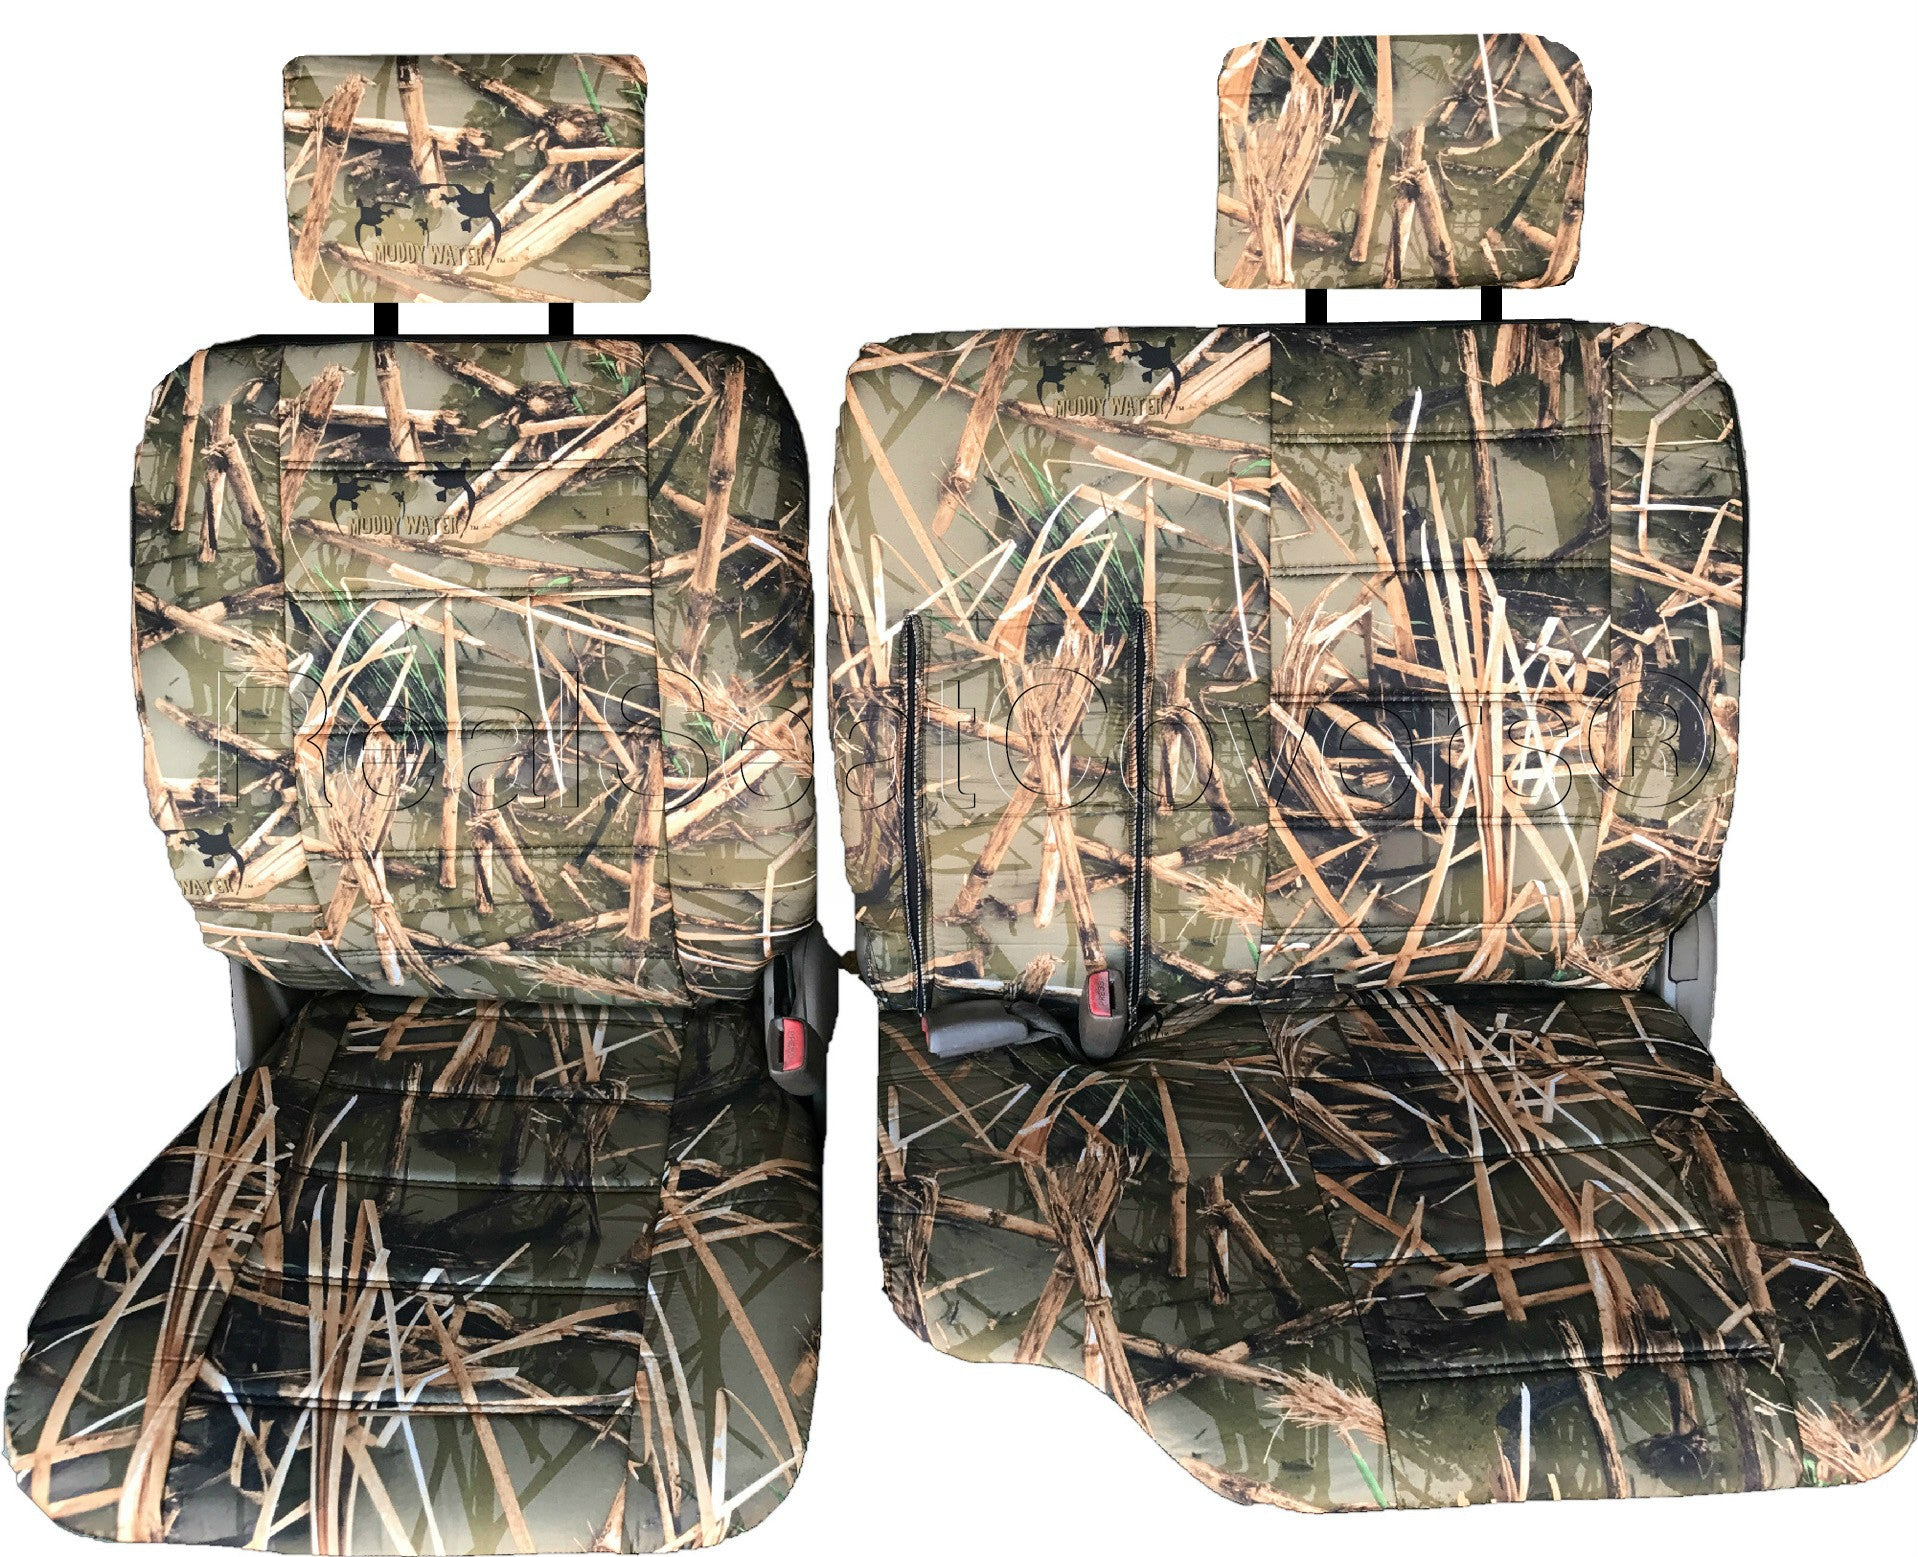 Peachy Toyota Tacoma Front 60 40 Split Bench Muddy Water Camo Seat Cjindustries Chair Design For Home Cjindustriesco